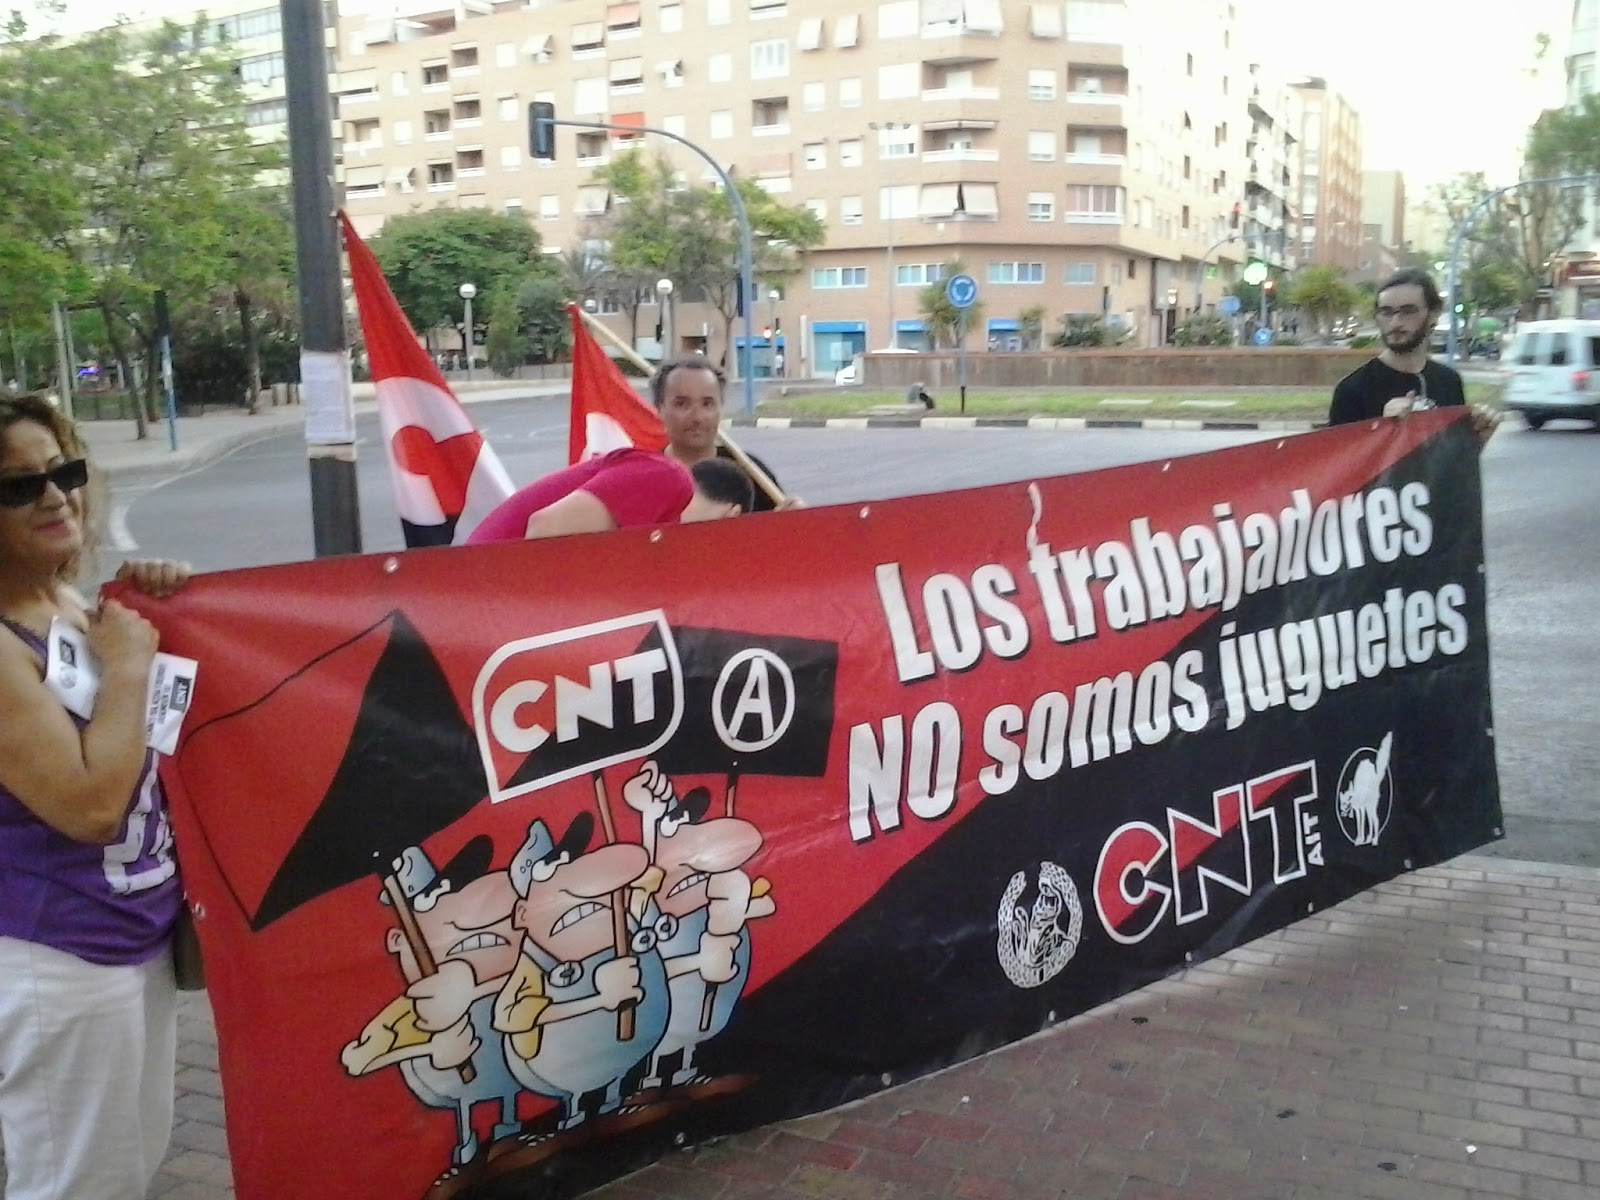 Fin del Conflicto contra Domino's Pizza, CNT Alicante,el Domino's Pizza,los anarquistas,frases anarquistas,los anarquistas,anarquista,anarquismo, frases de anarquistas,anarquia,la anarquista,el anarquista,a anarquista,anarquismo, anarquista que es,anarquistas,el anarquismo,socialismo,el anarquismo,o anarquismo,greek anarchists,anarchist, anarchists cookbook,cookbook, the anarchists,anarchist,the anarchists,sons anarchy,sons of anarchy, sons,anarchy online,son of anarchy,sailing,sailing anarchy,anarchy in uk,   anarchy uk,anarchy song,anarchy reigns,anarchist,anarchism definition,what is anarchism, goldman anarchism,cookbook,anarchists cook book, anarchism,the anarchist cookbook,anarchist a,definition anarchist, teenage anarchist,against me anarchist,baby anarchist,im anarchist, baby im anarchist, die anarchisten,frau des anarchisten,kochbuch anarchisten, les anarchistes,leo ferre,anarchiste,les anarchistes ferre,les anarchistes ferre, paroles les anarchistes,léo ferré,ferré anarchistes,ferré les anarchistes,léo ferré,  anarchia,anarchici italiani,gli anarchici,canti anarchici,comunisti, comunisti anarchici,anarchici torino,canti anarchici,gli anarchici,communism socialism,communism,definition socialism, what is socialism,socialist,socialism and communism,CNT,CNT, Confederación Nacional del Trabajo, AIT, La Asociación Internacional de los Trabajadores, IWA,International Workers Association,FAU,Freie Arbeiterinnen und Arbeiter-Union,FORA,F.O.R.A,Federación Obrera Regional Argentina,COB,Confederação Operária Brasileira ,Priama Akcia,CNT,Confédération Nationale du Travail,USI,Unione Sindacale Italiana,  NSF iAA,Norsk Syndikalistisk Forbund,ZSP,Zwiazek Syndykalistów Polski,AIT-SP,AIT Secção Portuguesa,solfed,Solidarity,inicijativa,Sindikalna konfederacija Anarho-sindikalisticka inicijativa, ASF,Anarcho-Syndicalist Federation,Grupo Germinal,CRA,Comisión de Relaciones Anarquistas, Grupo Humanidad Libre,Grupo Acción Directa,FEDERACIÓN DE GRUPOS ANARQUISTAS DE EUSKAL HERRIA Grupo El Sagitario,Basauri,Bizkaia,Grupo Lur Askea,Grupo Iraultza soziala,Iruñea,Pamplona,CATALUÑA,Grupo Alba,Grupo Aspasia,LEVANTe,Grupo Camilo Berneri ,Valencia,Grupo Fuego,Grupo Libertad,Individualidad Fero,Bennisa,Alicante,CENTRO,MADRID,Grupo Tierra,Grupo Albatros,Grupo Vólia,ISLAS CANARIAS,Grupo Perdigón,los anarquistas,Iruñea,el anarquismo Pamplona,Umanità nova,Le monde libertaire,Alternative libertaire,El libertario, Tierra y libertad,Ekinaren ekinaz,Organize!,Resistance,A-kontra, Federación Libertaria Argentina,Anarchist Federation,Fédération Anarchiste,Föderation deutschsprachiger AnarchistInnen,Federazione Anarchica Italiana,Federación Anarquista,los trabajadores, los trabajadores de la,los trabajadores de,por sus trabajadores el,por los trabajadores del,trabajadores y trabajadoras,las trabajadoras, dia de los trabajadores,